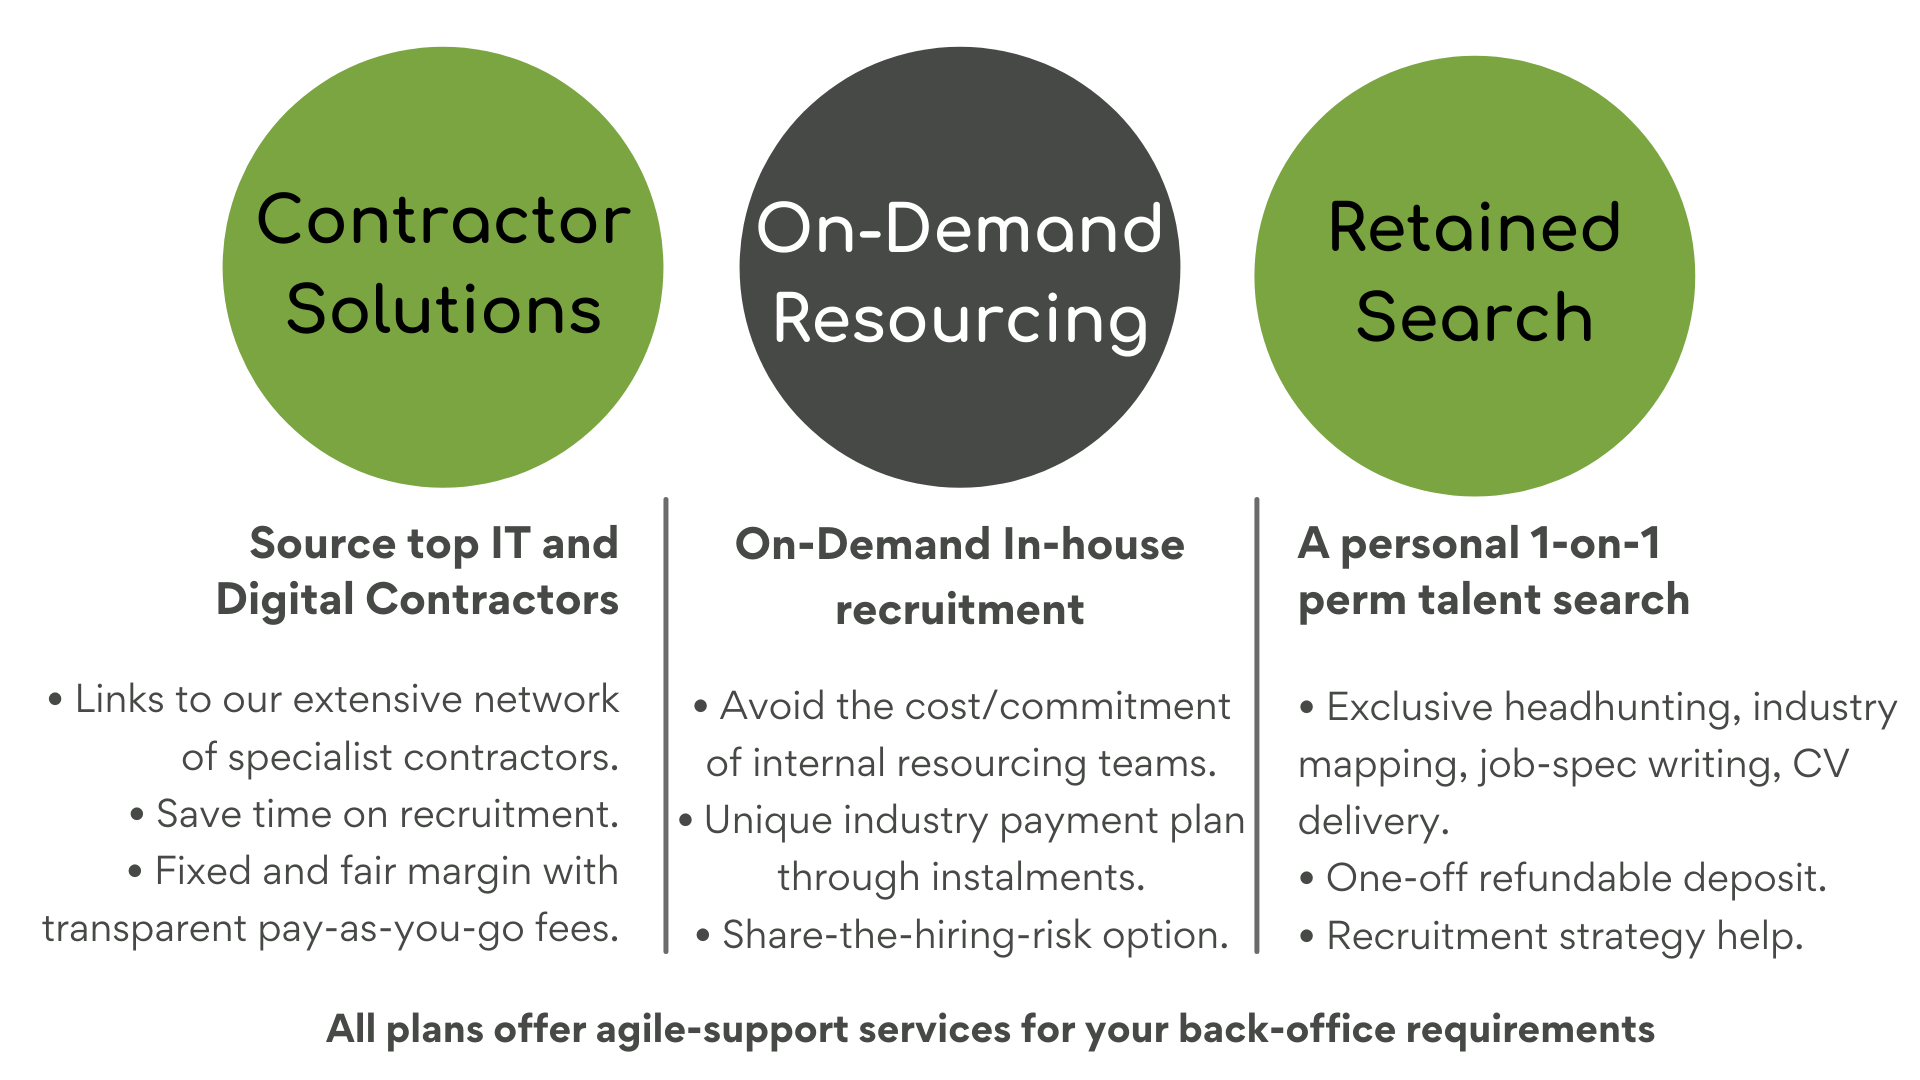 Contractor Solutions, On-Demand Resourcing and Retained Search explained.  Contractor Solutions: Source top IT and Digital Contractors. It involves:  • Links to our extensive network of specialist contractors. • Save time on recruitment. • Fixed and fair margin with transparent pay-as-you-go fees.  On-Demand Resourcing: On-Demand In-house recruitment:  • Avoid the cost/commitment of internal resourcing teams. • Unique industry payment plan through instalments. • Share-the-hiring-risk option.  Retained Search: A personal 1-on-1 perm talent search:  • Exclusive headhunting, industry mapping, job-spec writing, CV delivery. • One-off refundable deposit. • Recruitment strategy help.  All plans offer agile-support services for your back-office requirements.